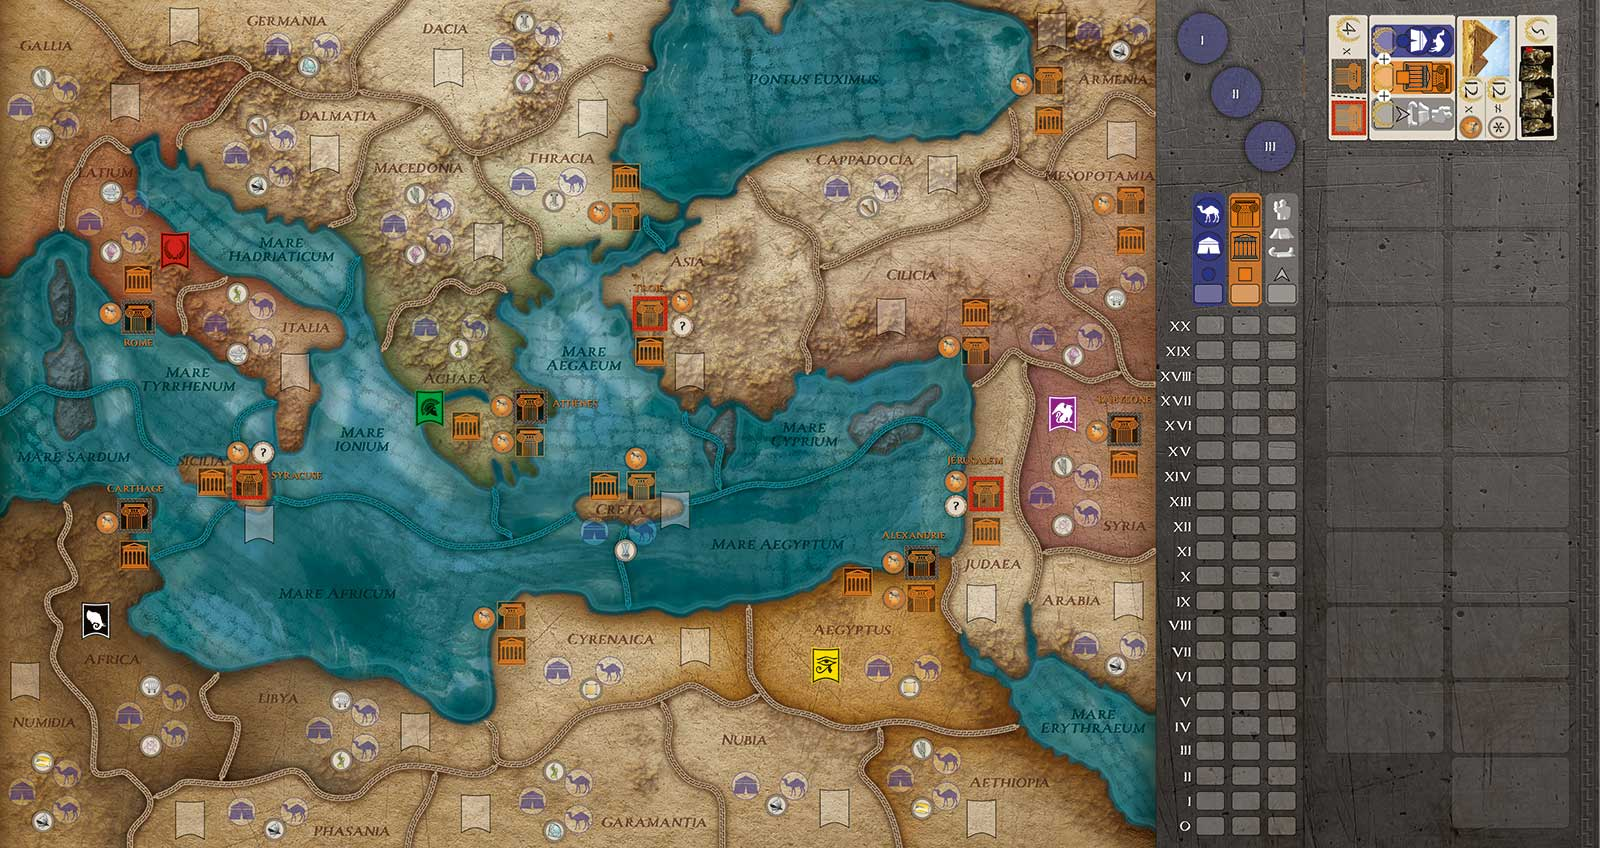 Mare nostrum empires queen of games de beste leukste mare nostrum empires gumiabroncs Images